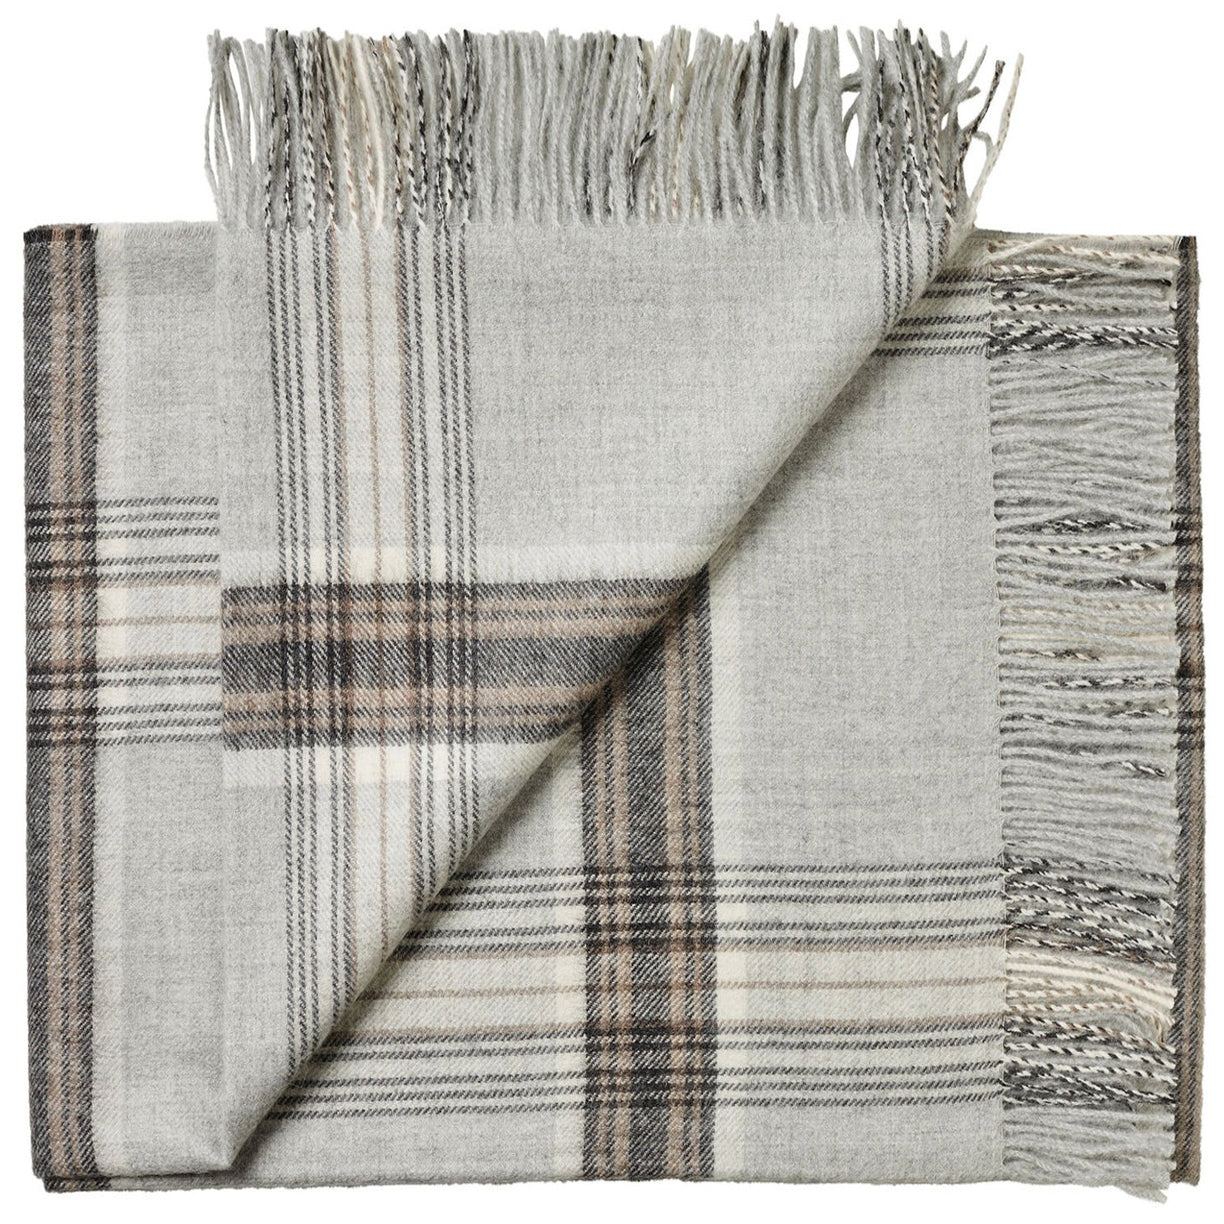 Soft Alpaca Wool Throw Blanket Light Gray and Tan Plaid